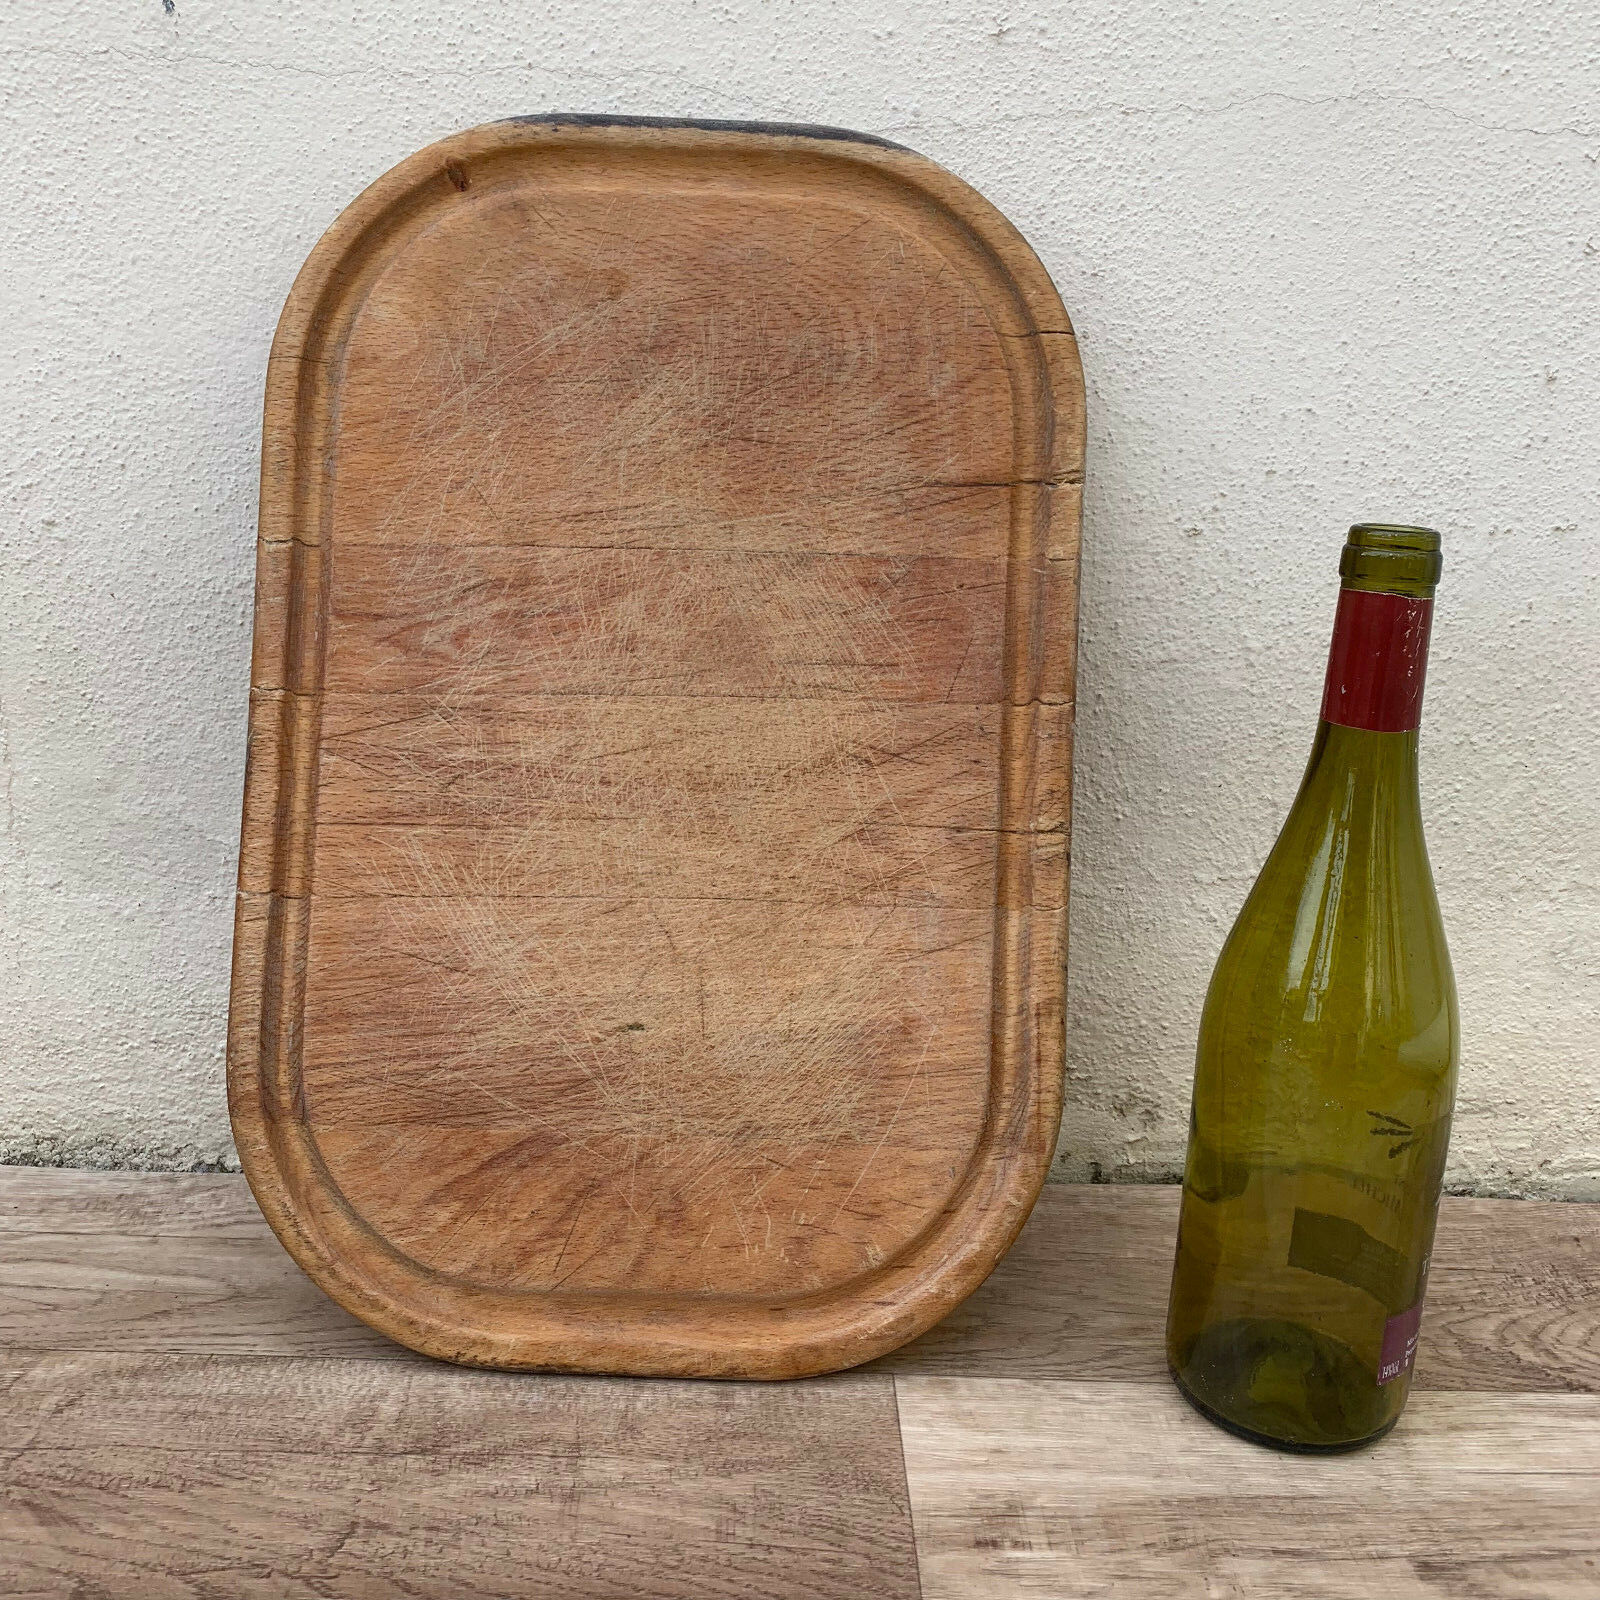 ANTIQUE VINTAGE FRENCH BREAD OR CHOPPING CUTTING BOARD WOOD   23121812